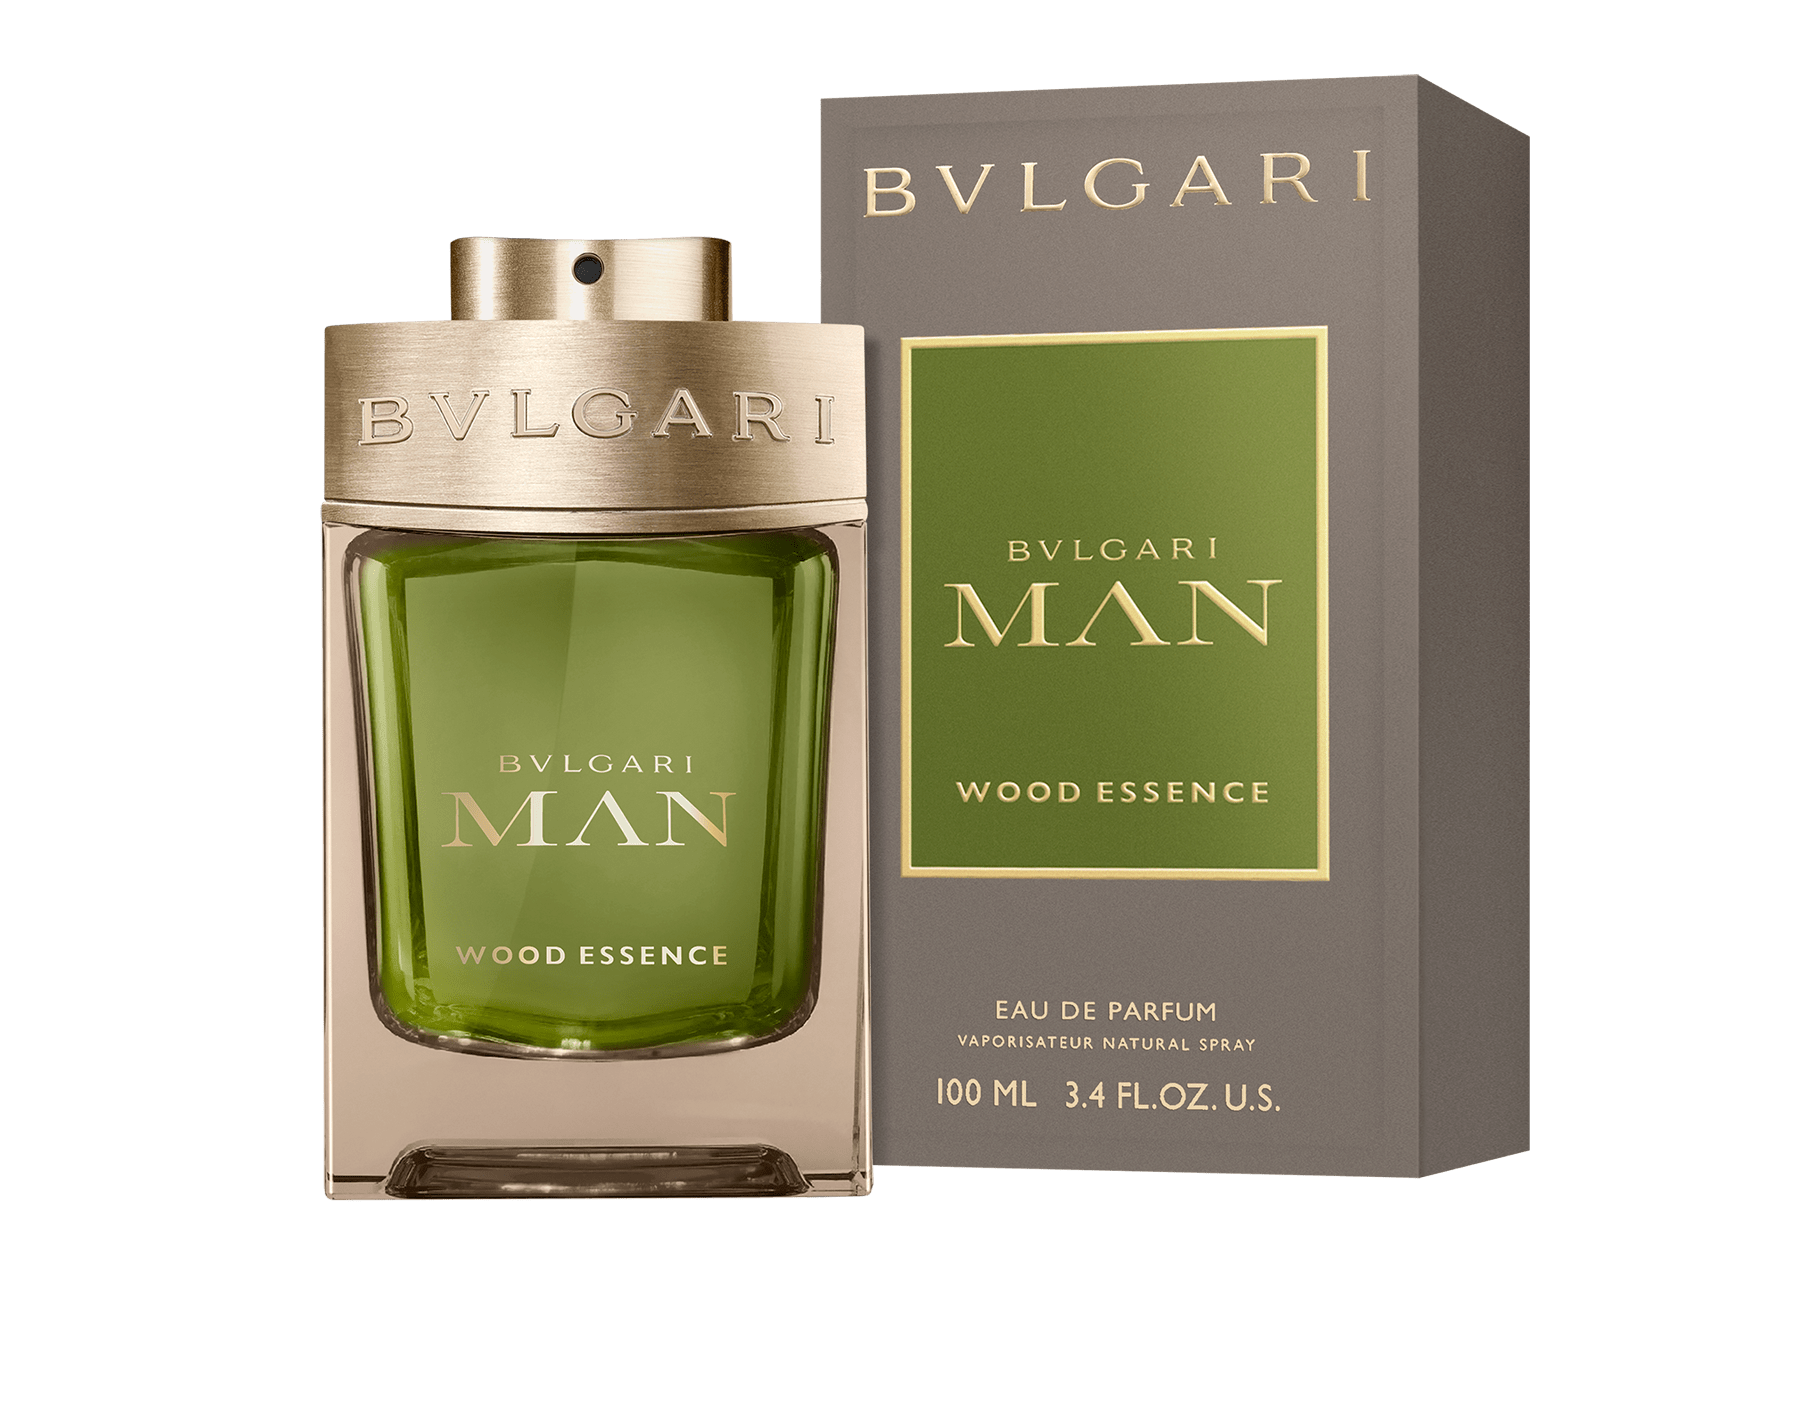 A neo woody signature uniting the finest perfumery essences – cedar, cypress, and vetiver – and resonating with the warm and sunny notes of benzoin resins BVLGARIMANWOODESSENCE image 2